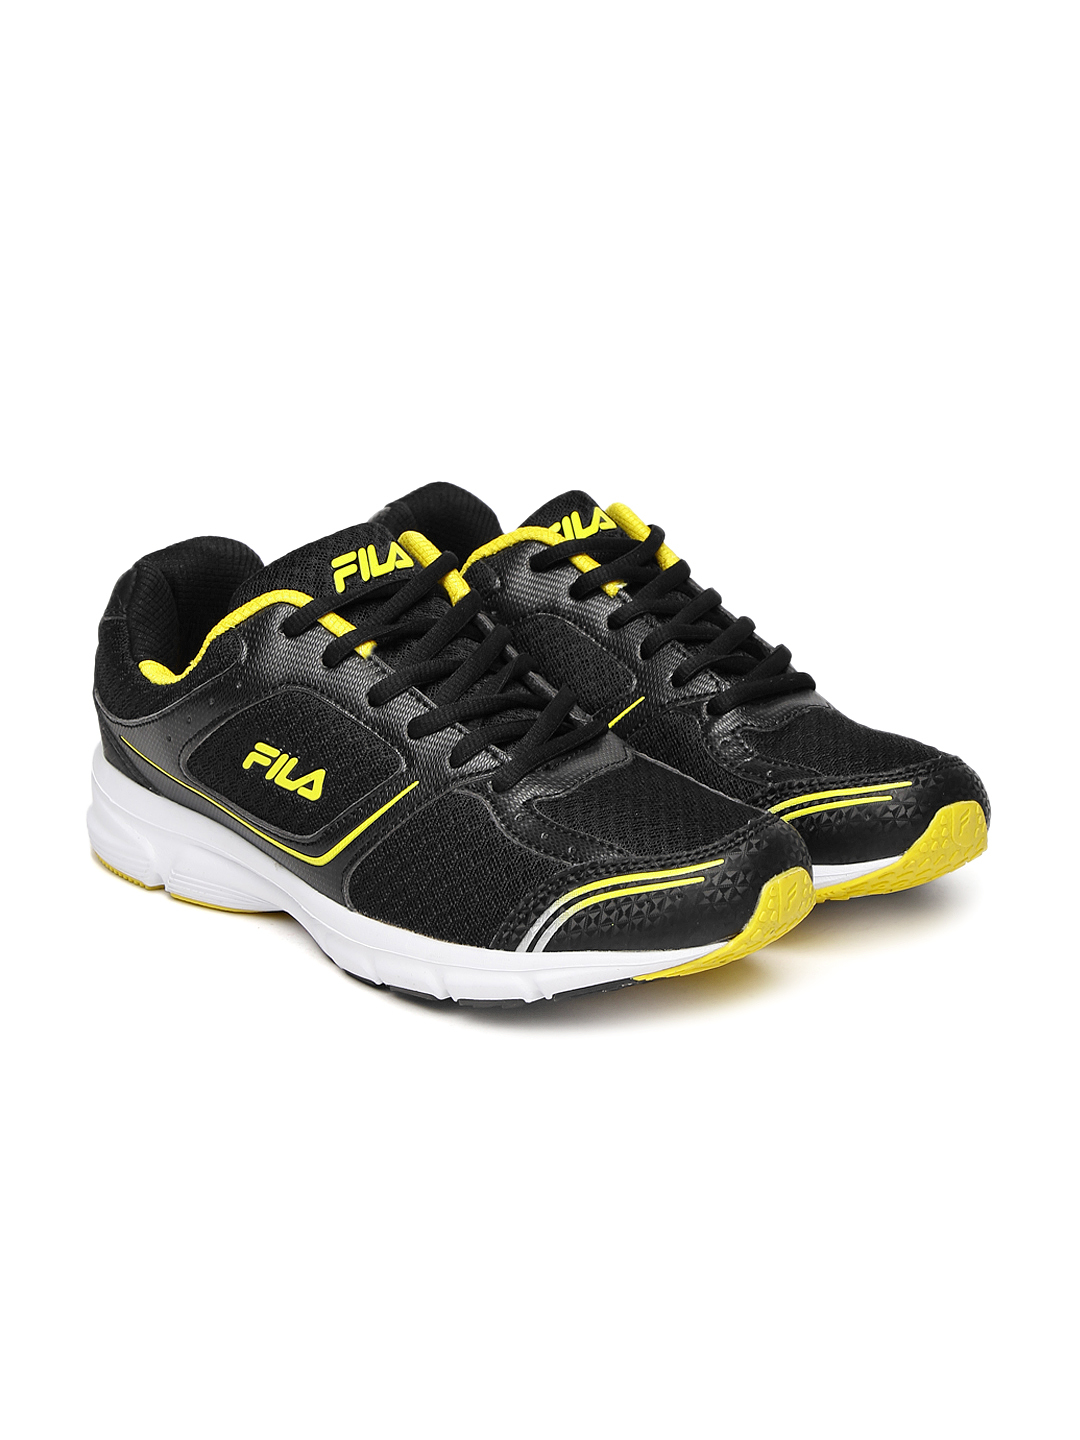 FILA Men Black RUN FAST PLUS 4 Running Shoes image 1